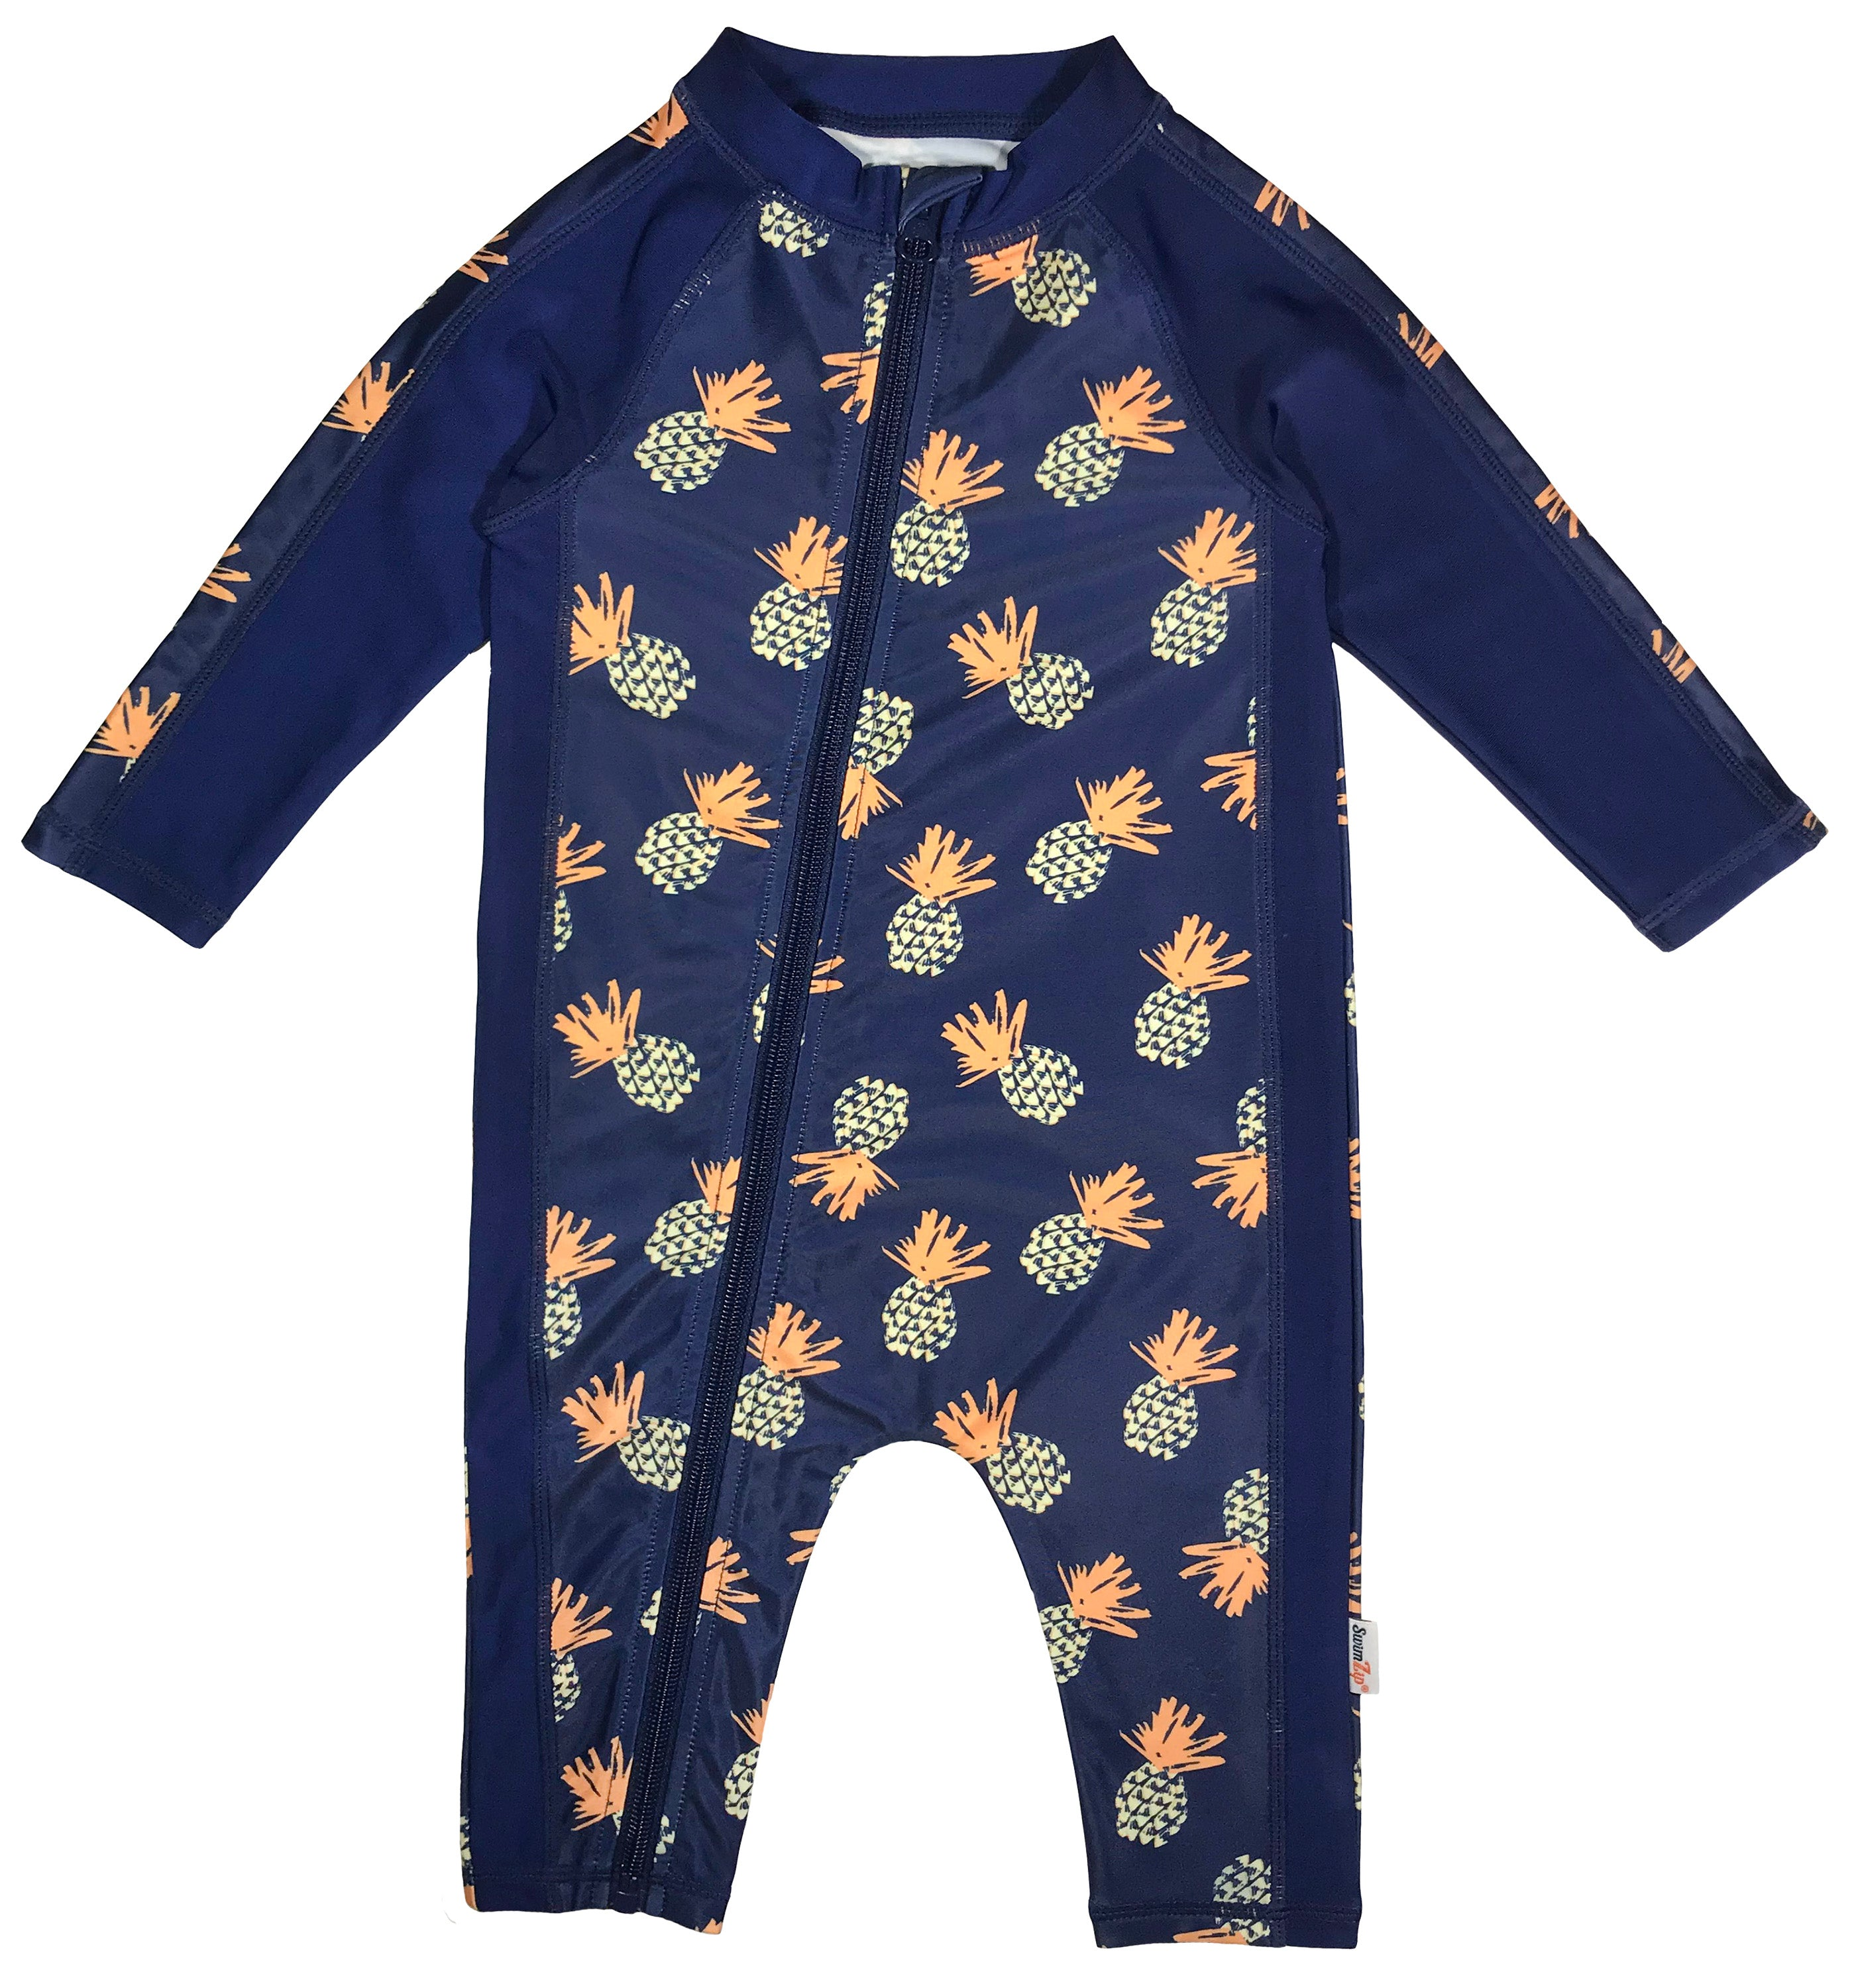 c019fb2d29 Sunsuit - Boy Long Sleeve Romper with UPF 50+ UV Sun Protection |